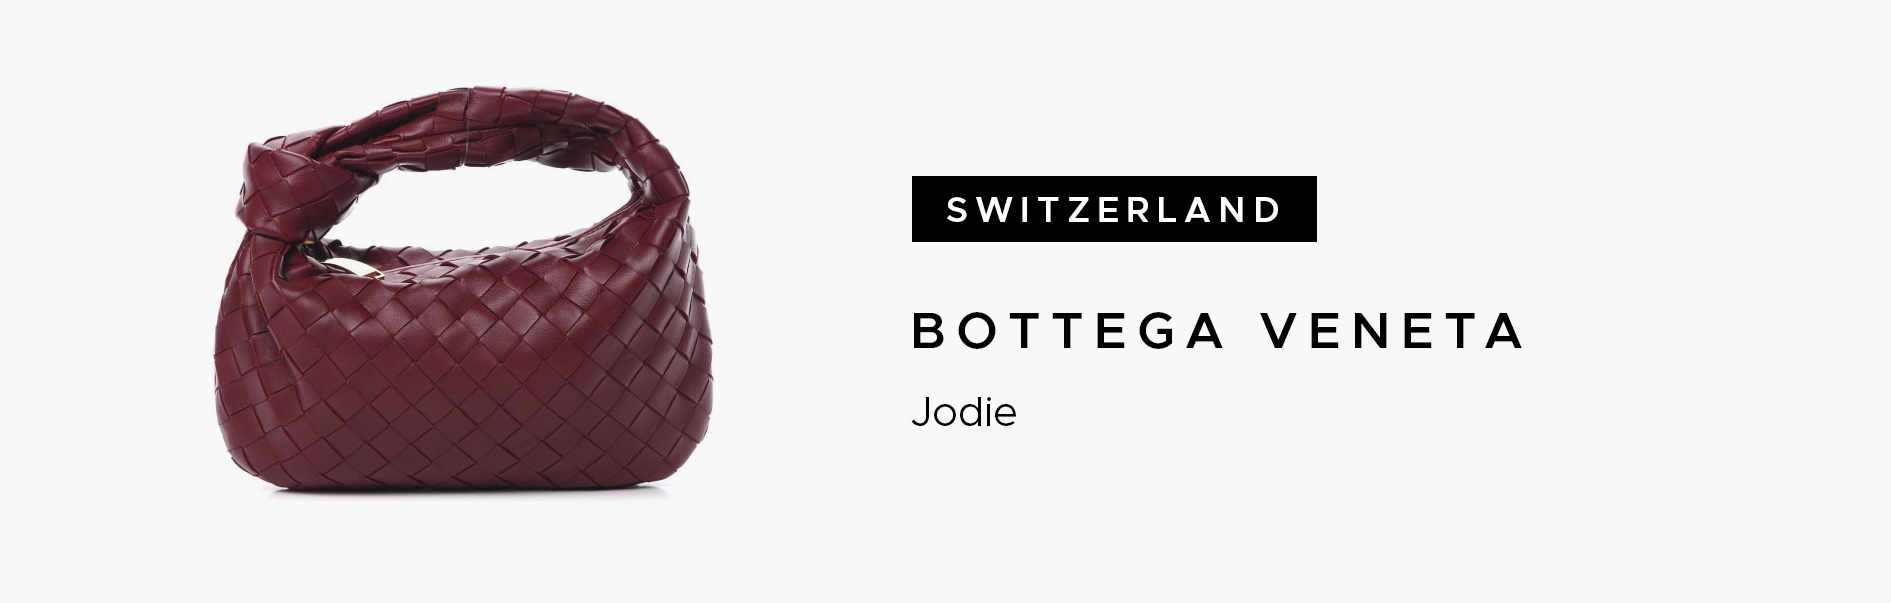 Switzerland Bottega Veneta